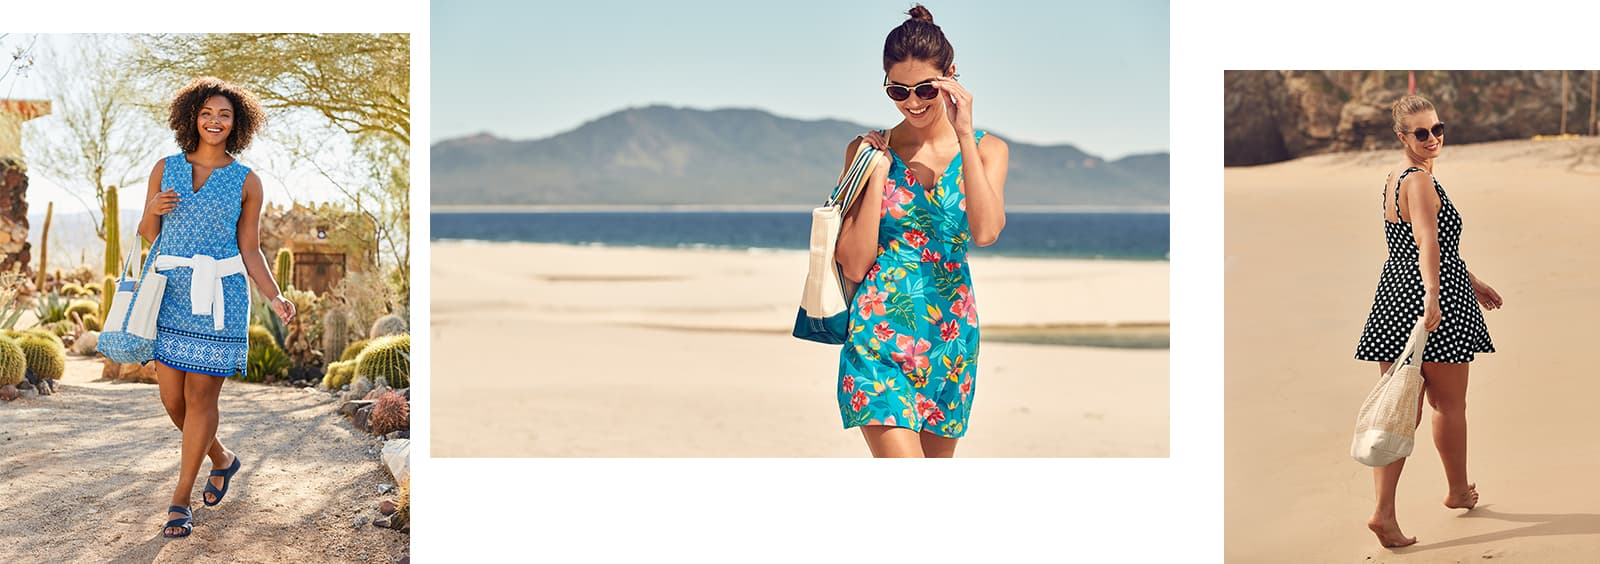 What is a Swimdress and Why Do You Need One?